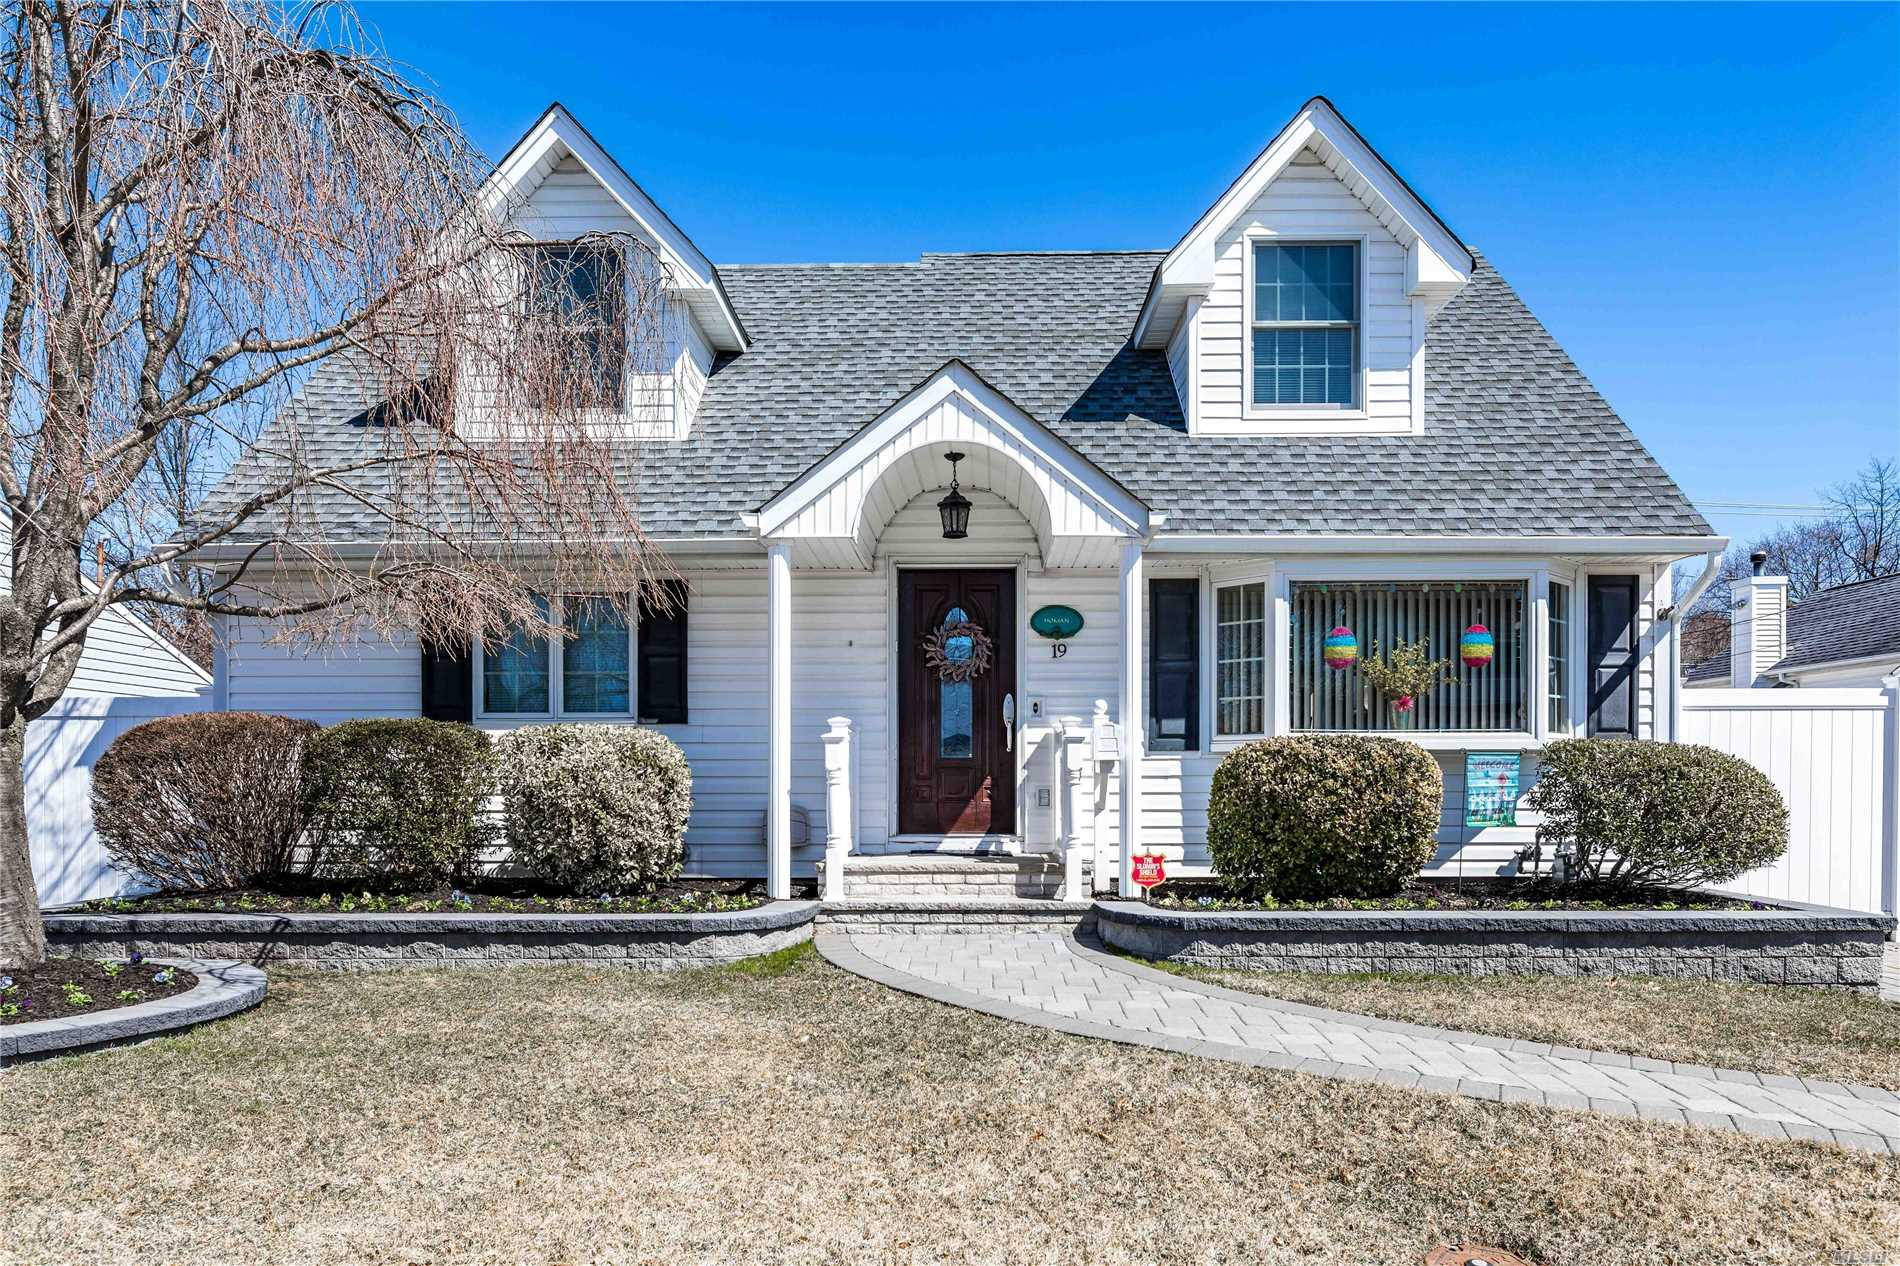 Absolutely Stunning! Pride of ownership without a doubt! Features include cathedral ceilings, open floor plan, finished basement, full rear dormer extension 2016. This one will not last!